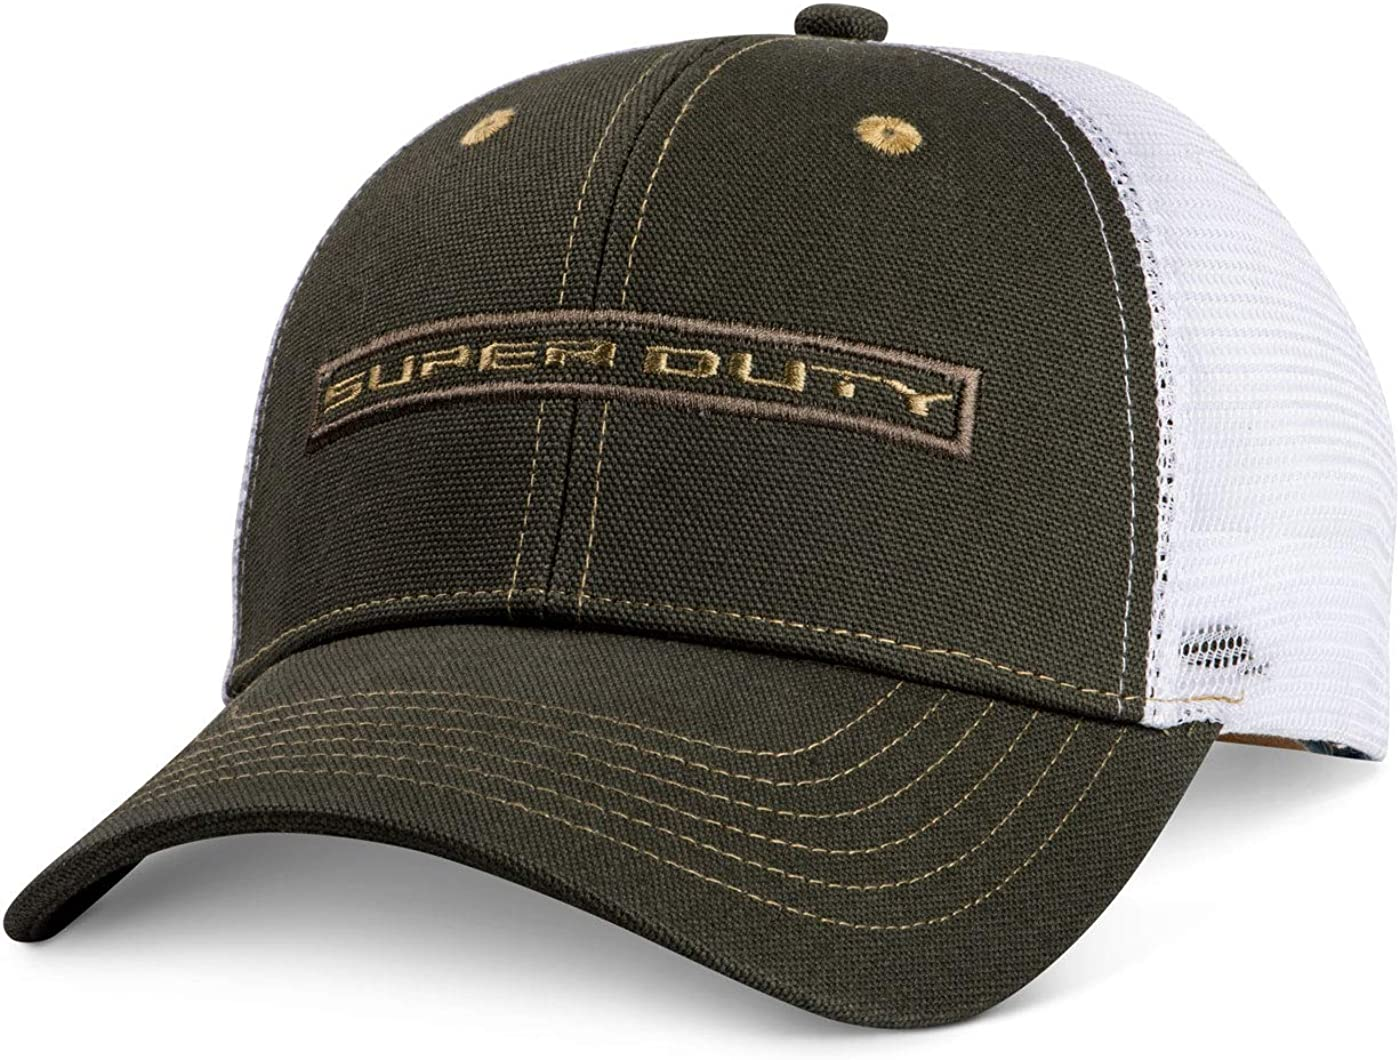 A-G-D Super Duty Olive and White Mesh Hat